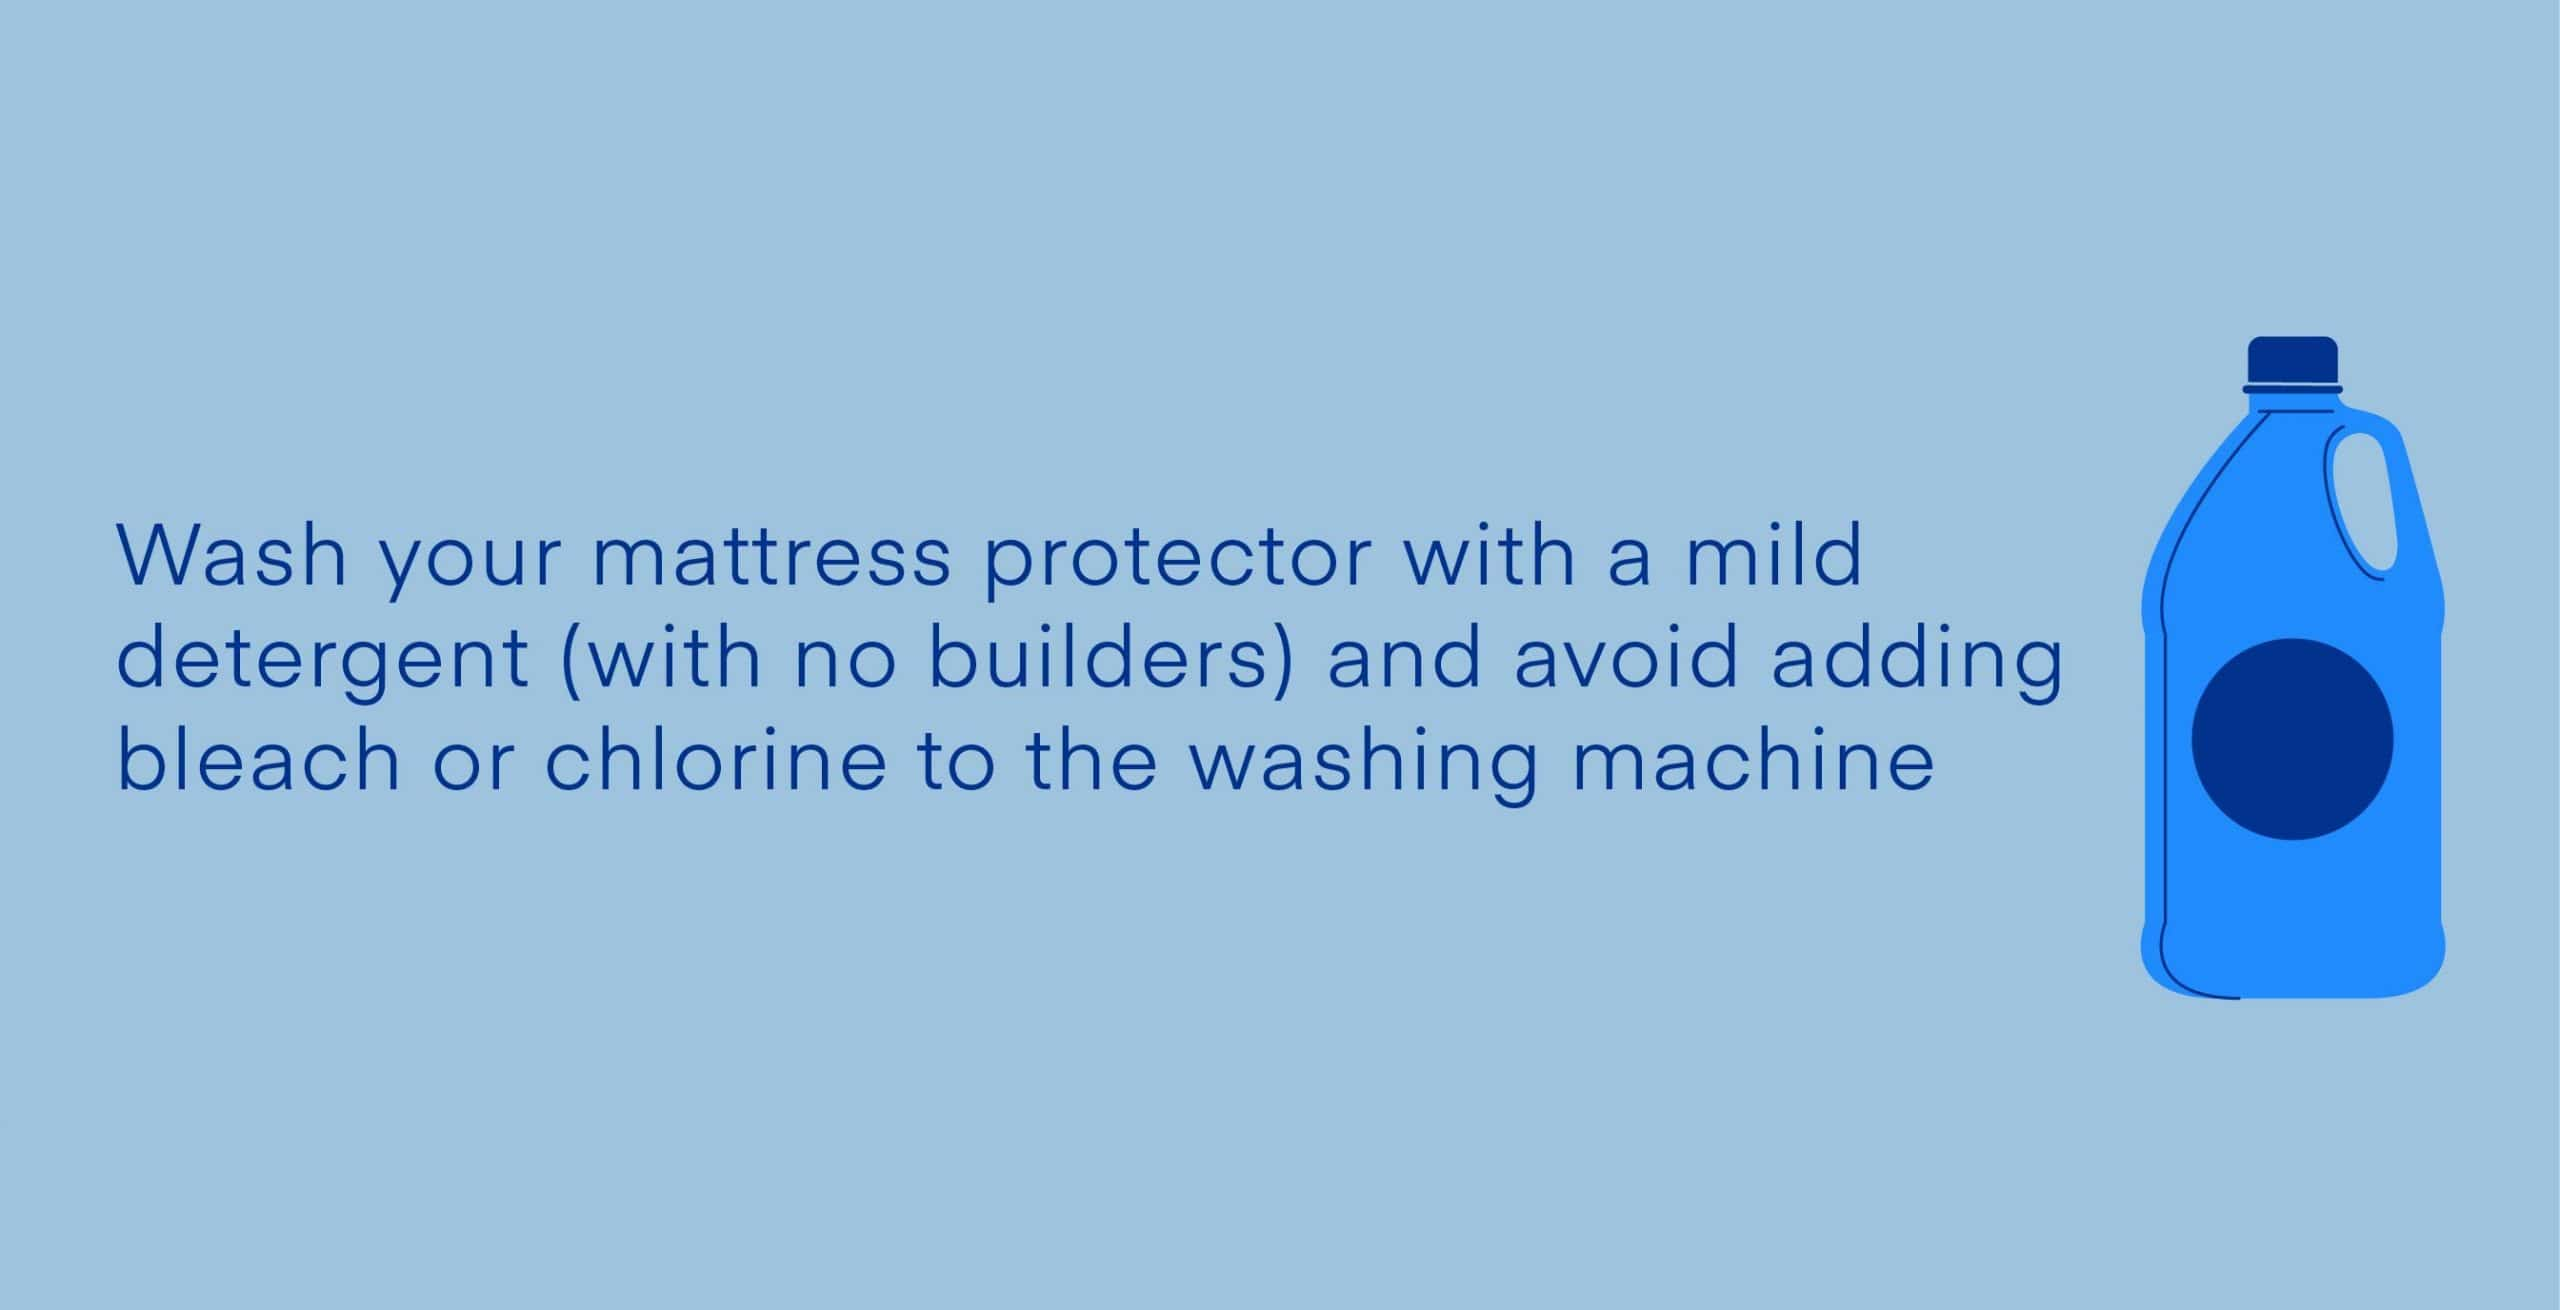 How Often Should You Wash Your Mattress Protector?